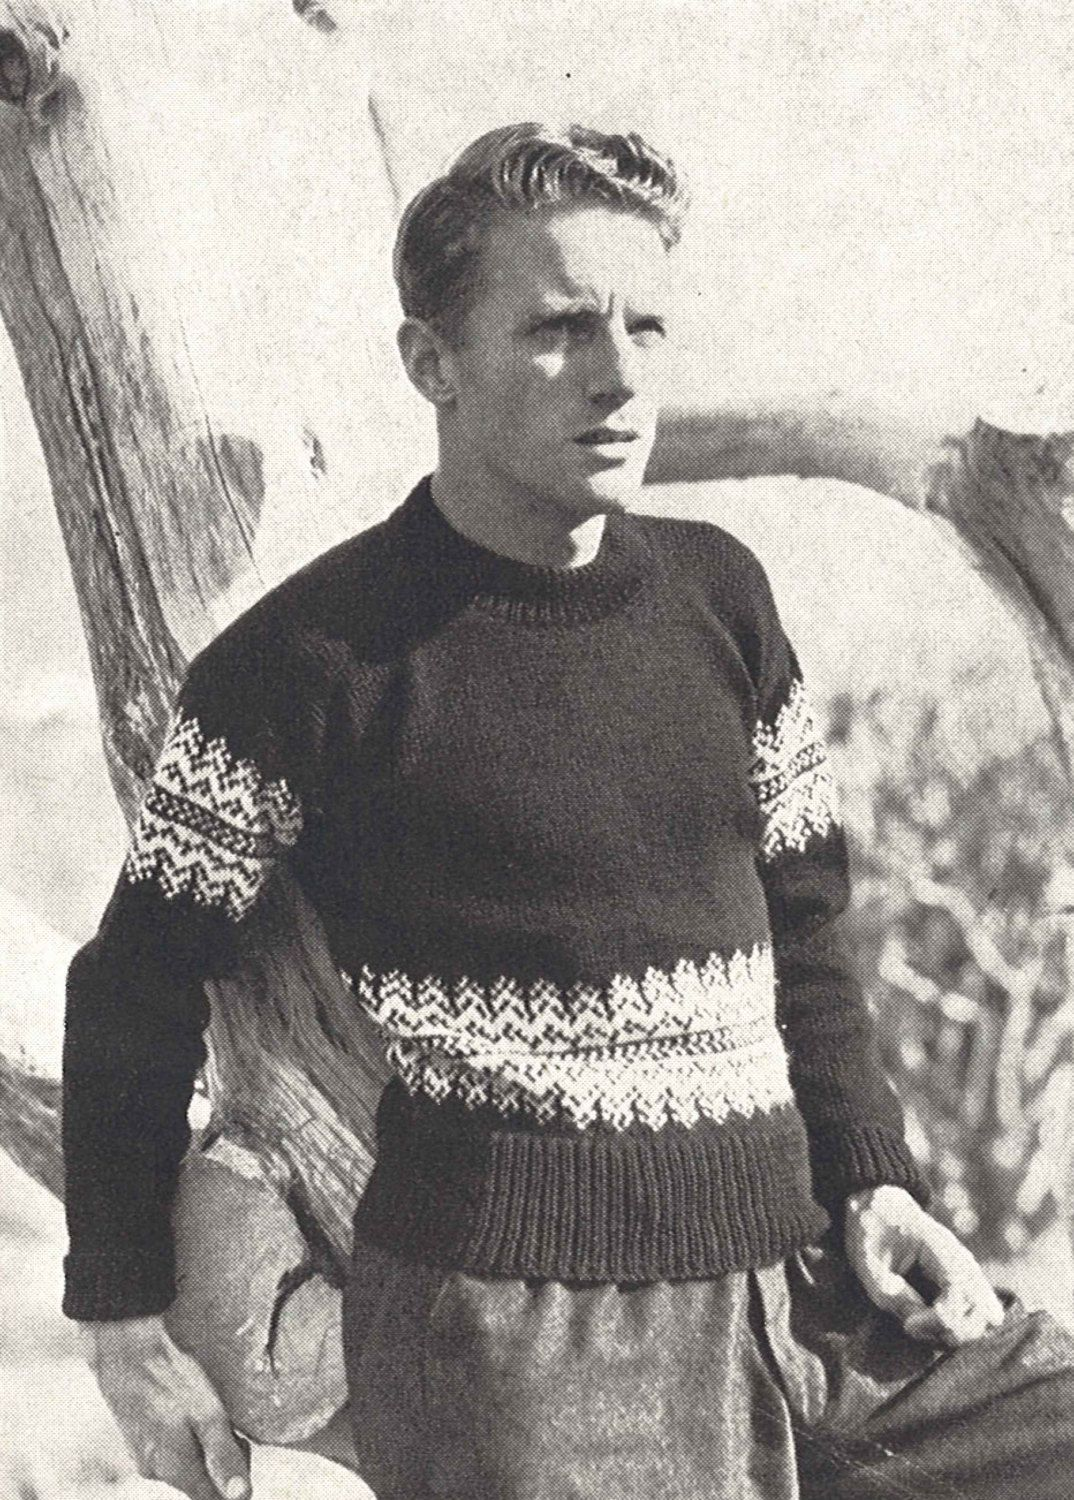 Nordique sweater 1950s knitting ski top jumper knitted pullover nordique sweater 1950s knitting ski top jumper knitted pullover 50s vintage vogue pattern bankloansurffo Choice Image